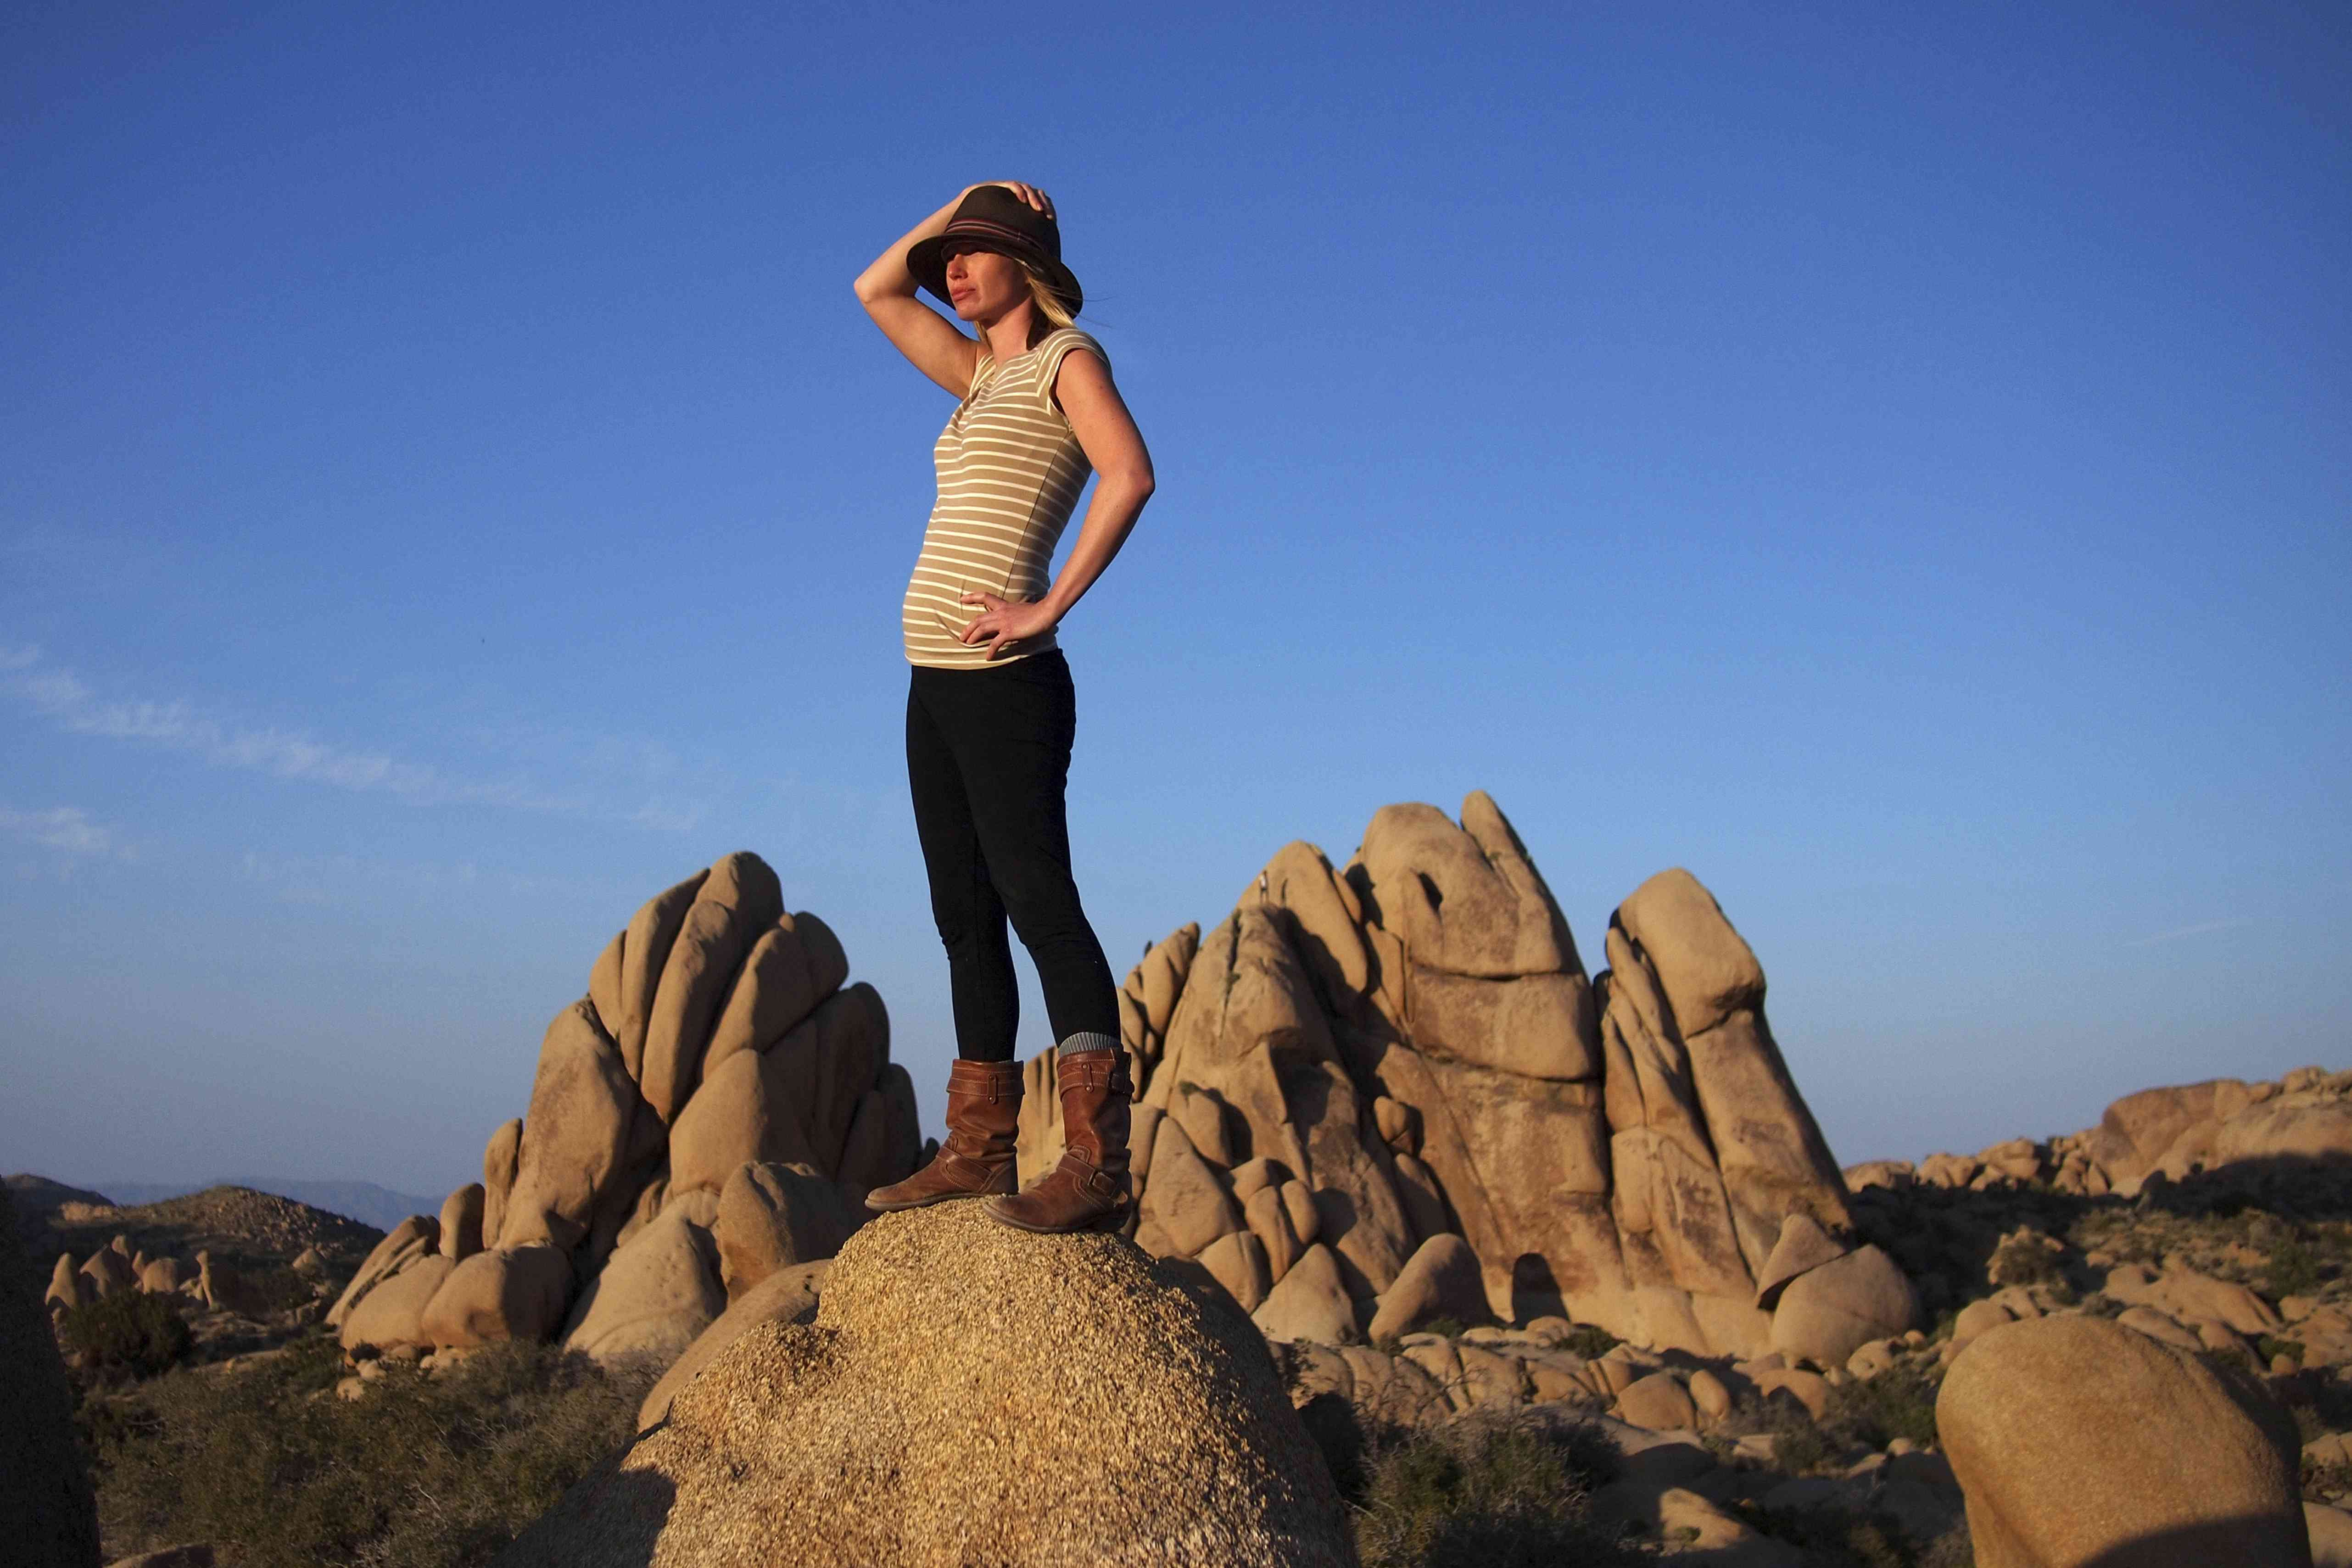 woman watches the sunset in Joshua Tree National Park